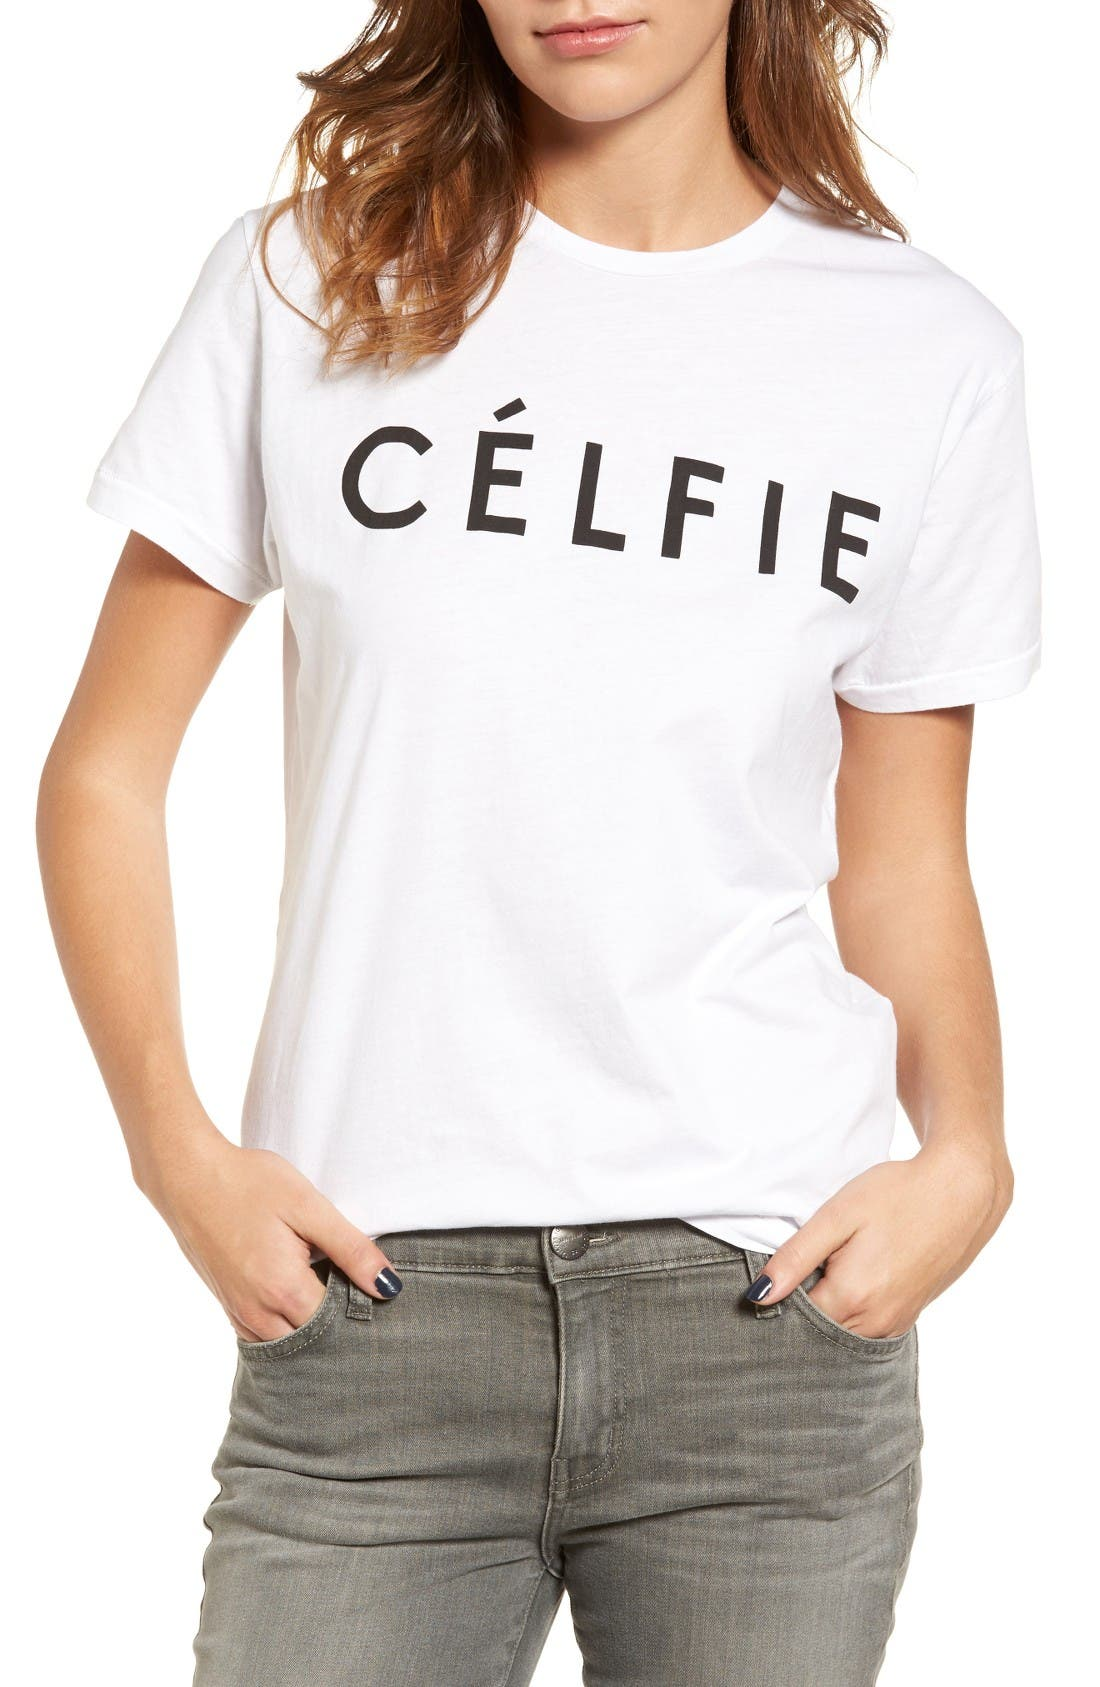 Sincerely Jules 'Célfie' Graphic Tee